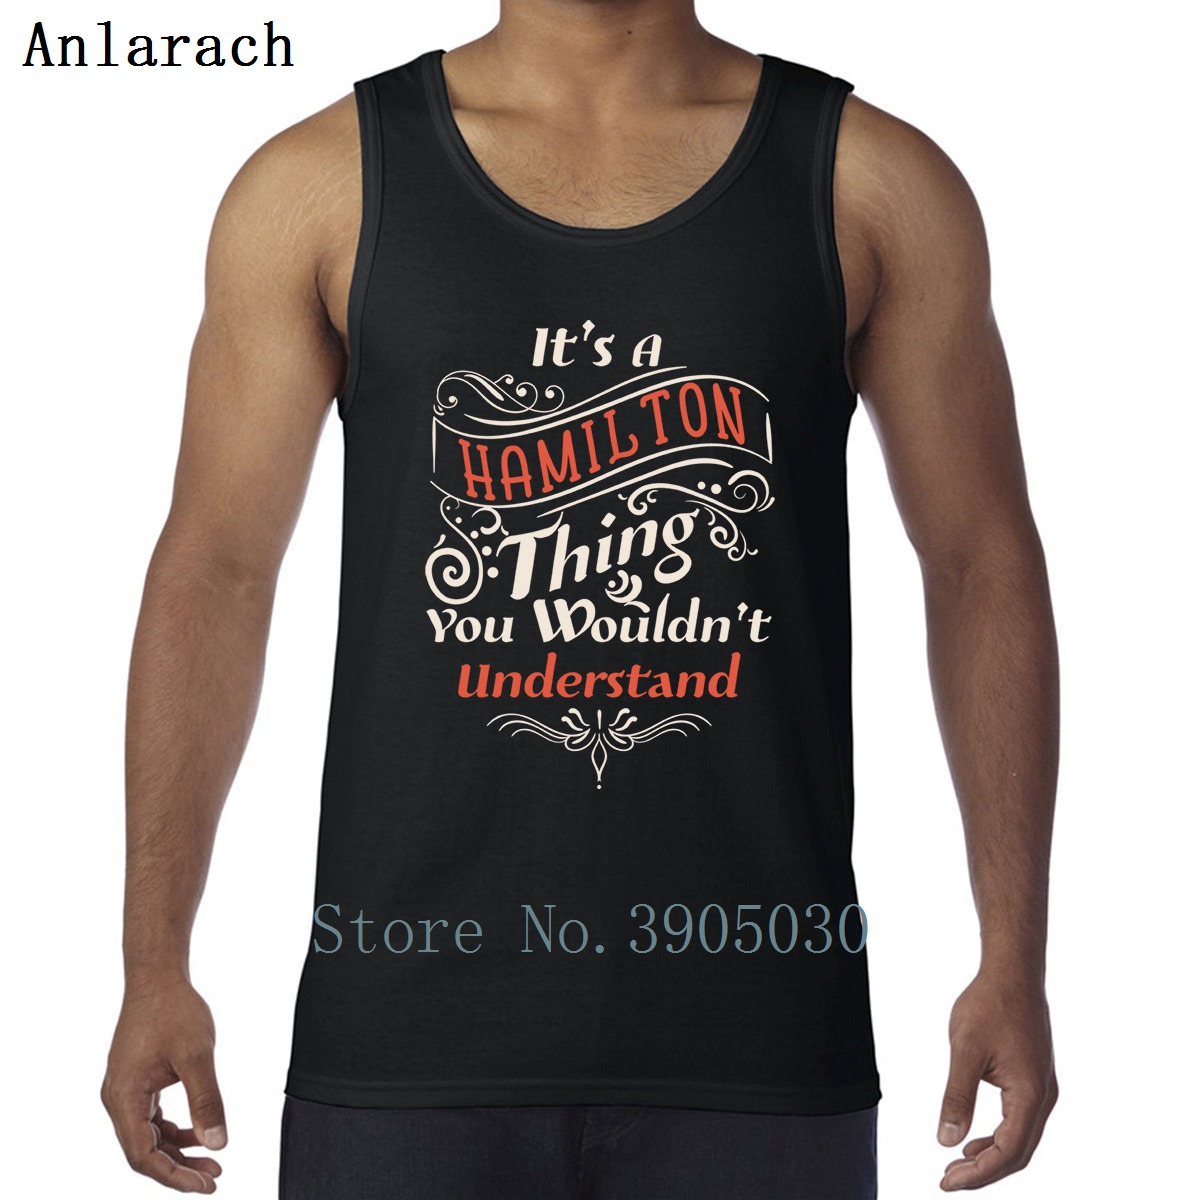 It's A Hamiltons Thing Alexander Quotes Vest Printed Workouts Big Sizes Casual Tank Tops For Men Graphic Pattern Stylish Summer image